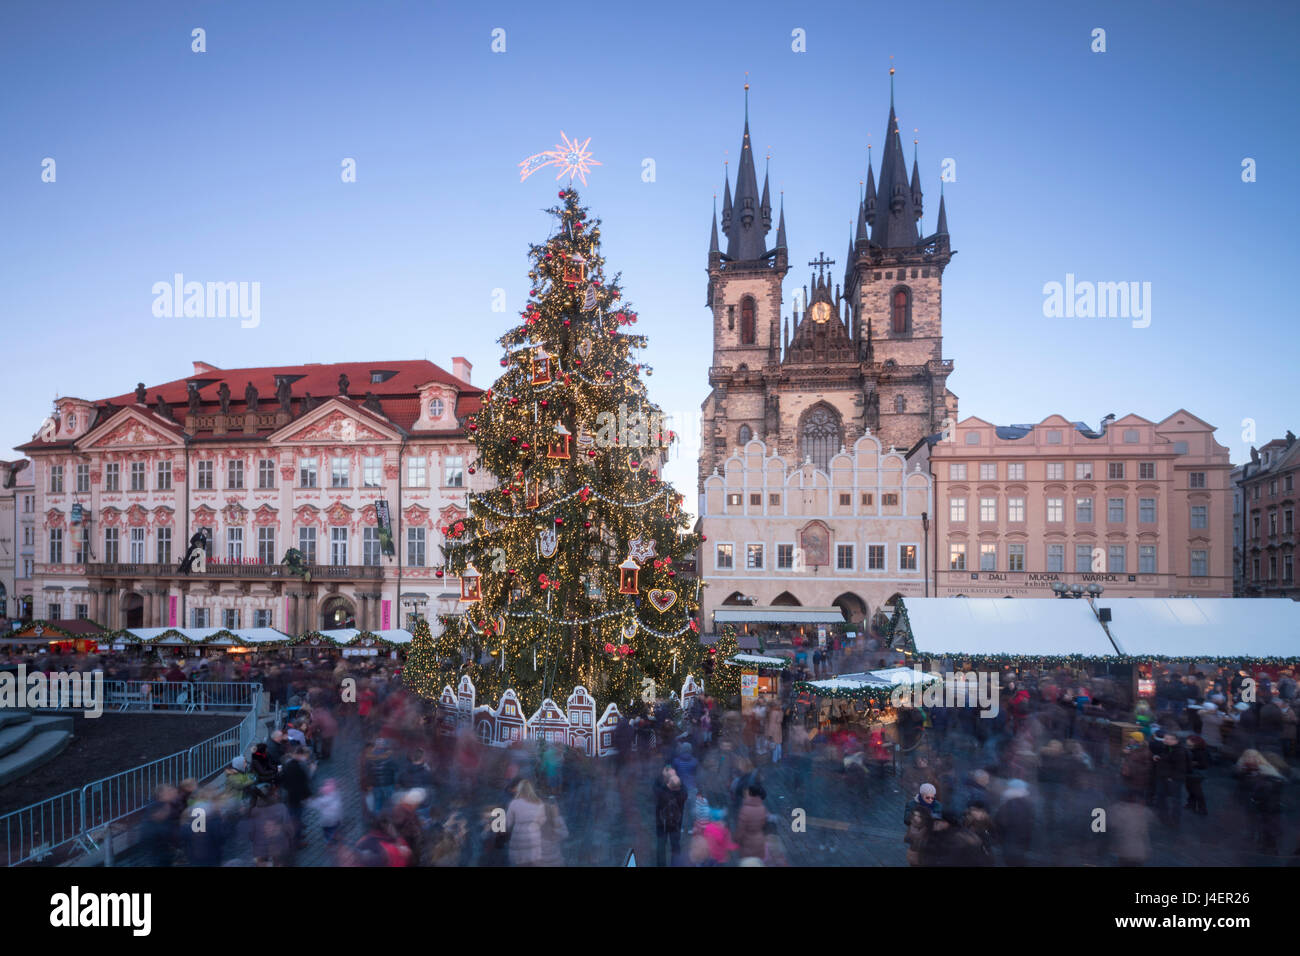 Tourists at the Christmas markets facing the Cathedral of St. Vitus, Old Town Square, UNESCO, Prague, Czech Republic - Stock Image